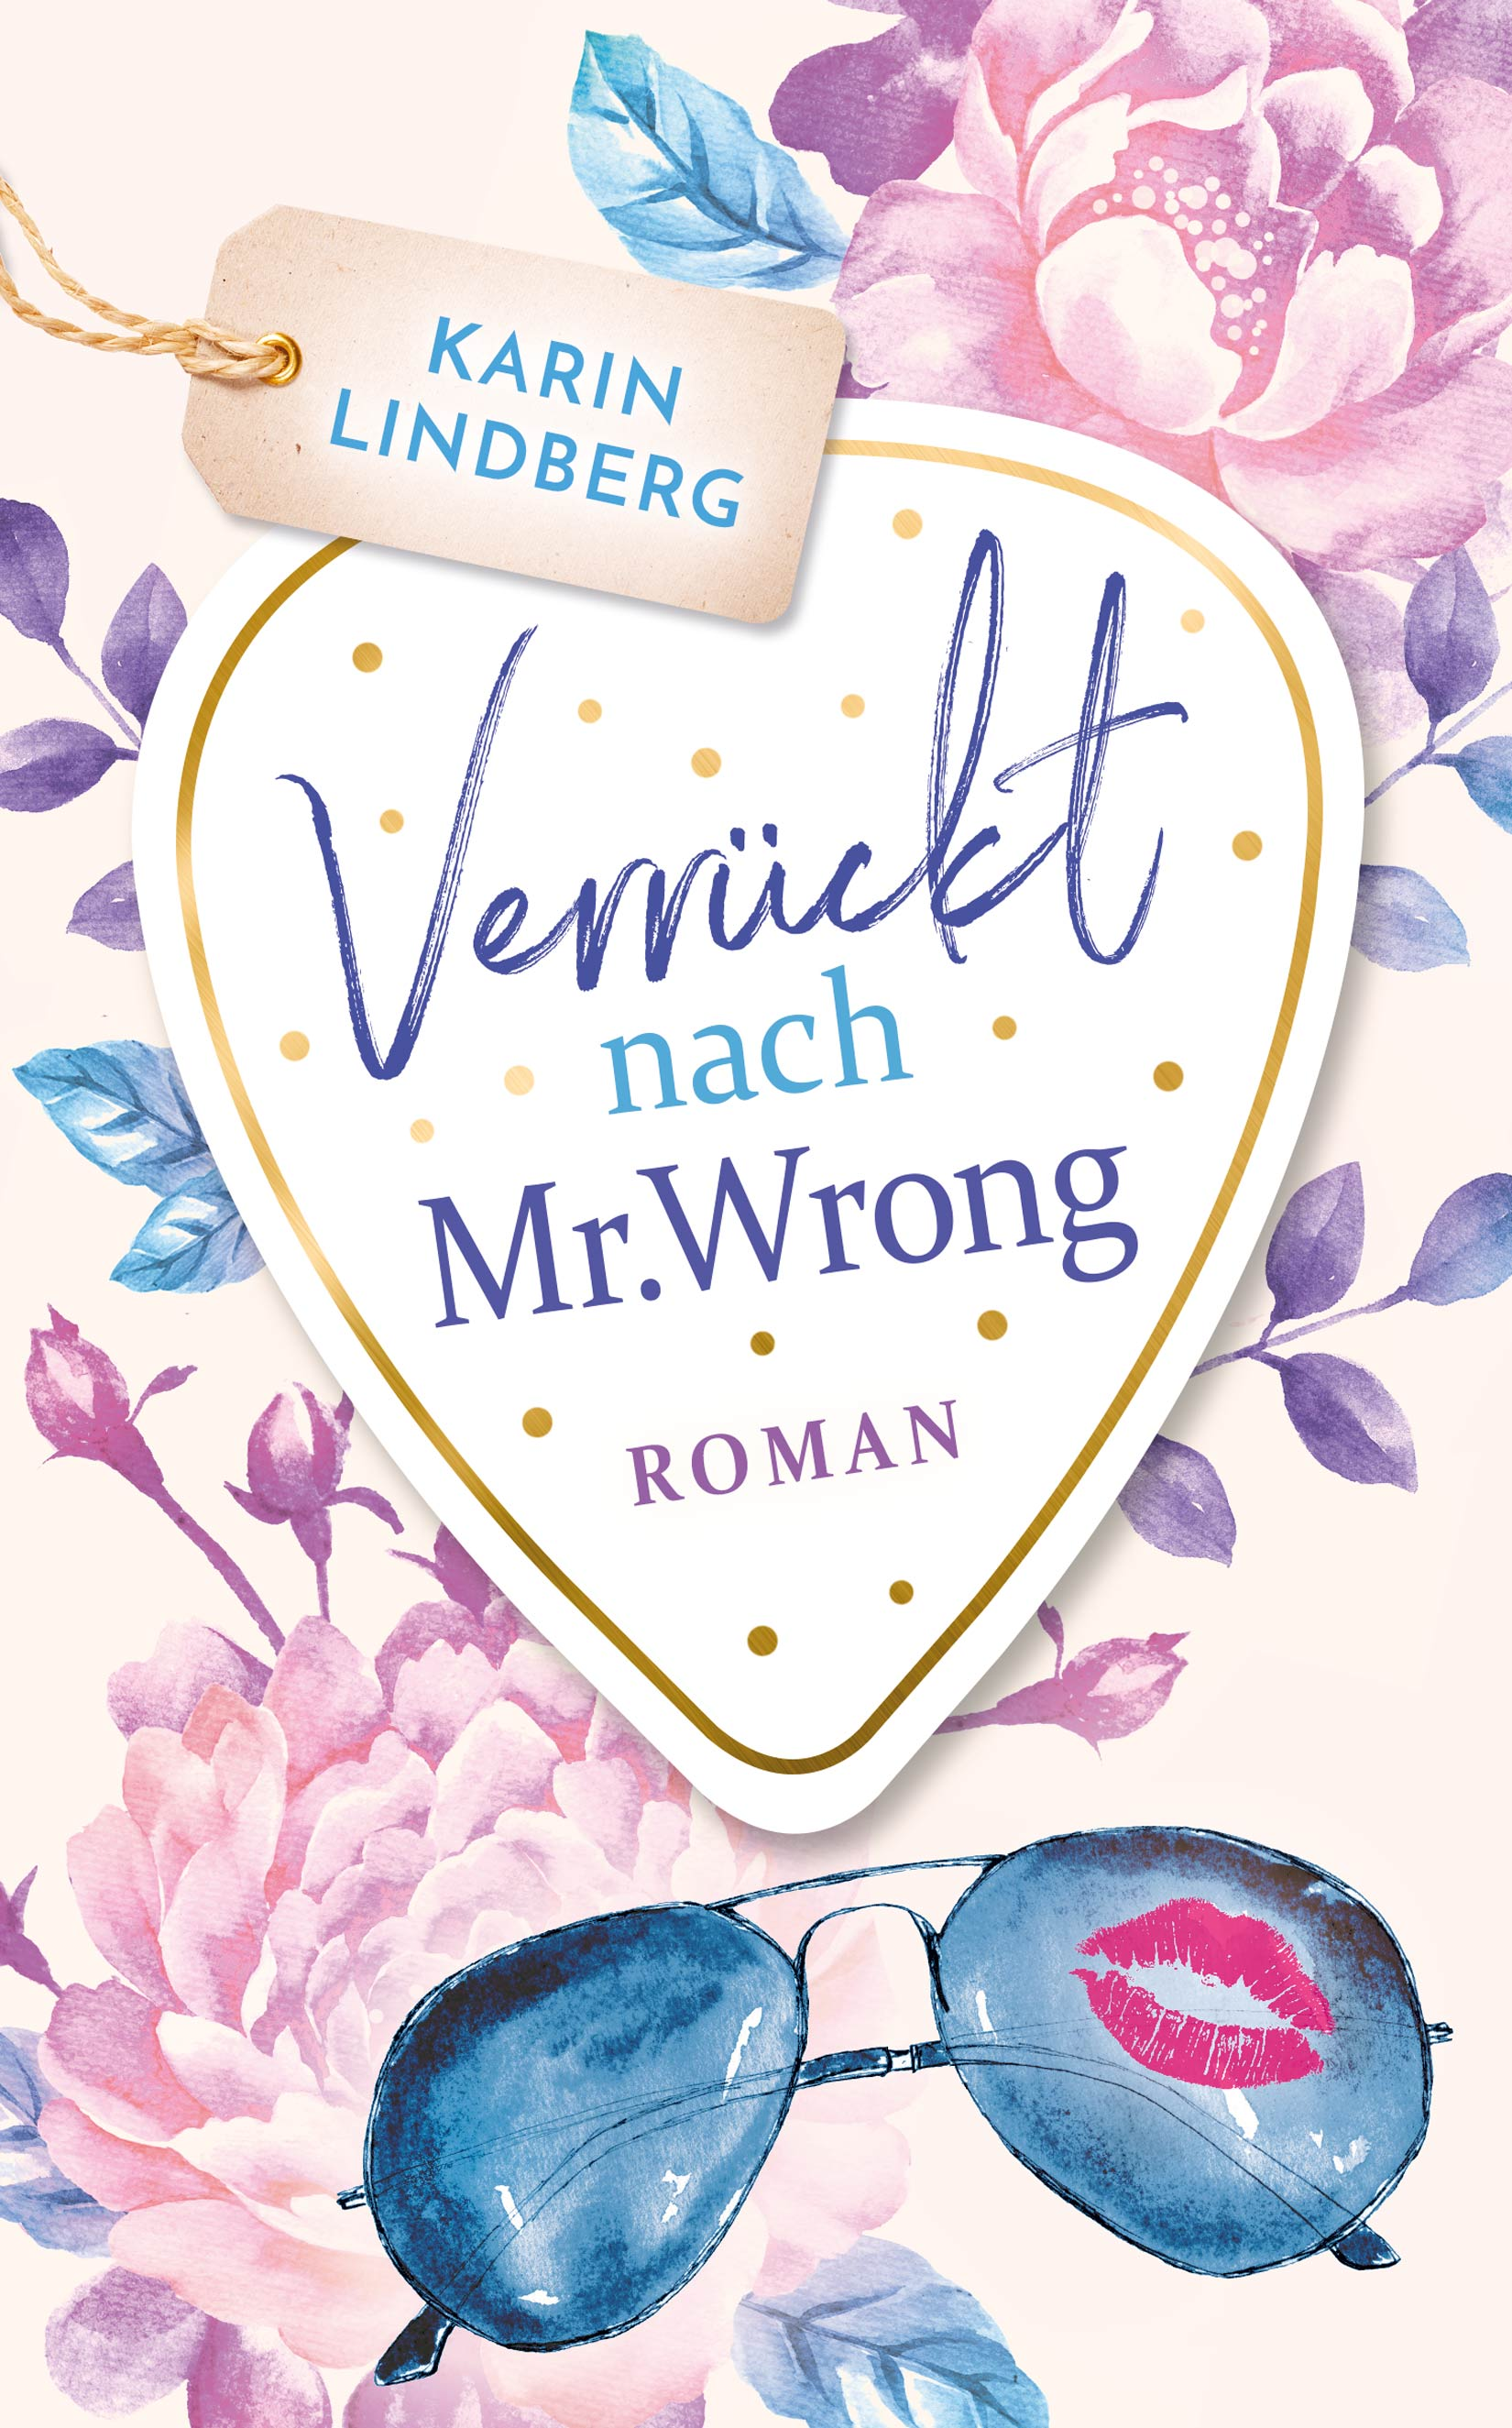 Klein-Gross-Verruckt-nach-mister-wrong-ebook-CK.jpg